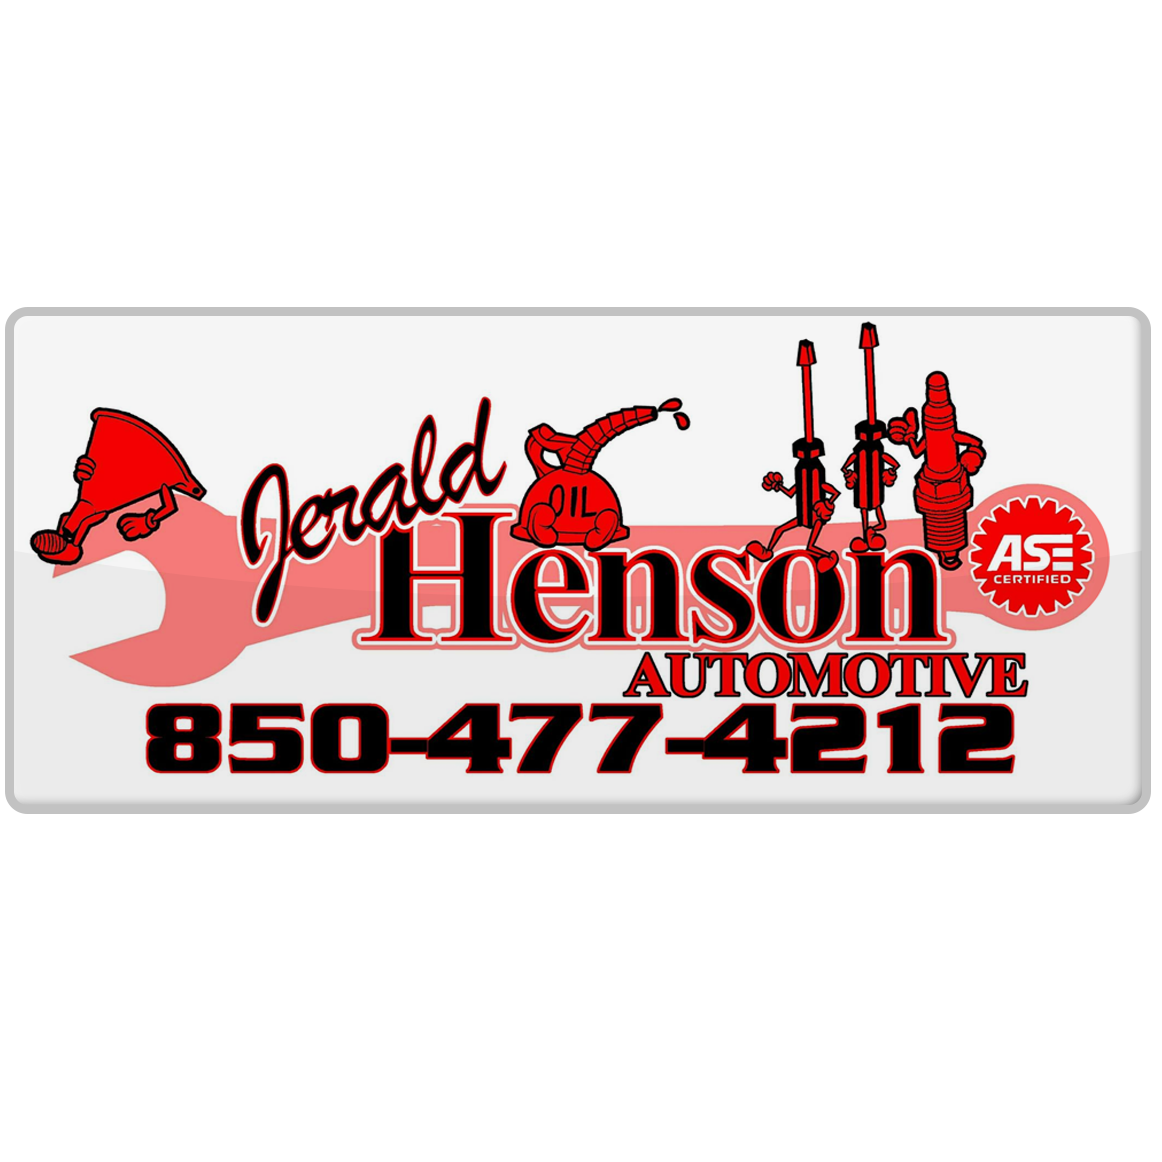 Jerald Henson Automotive, Inc